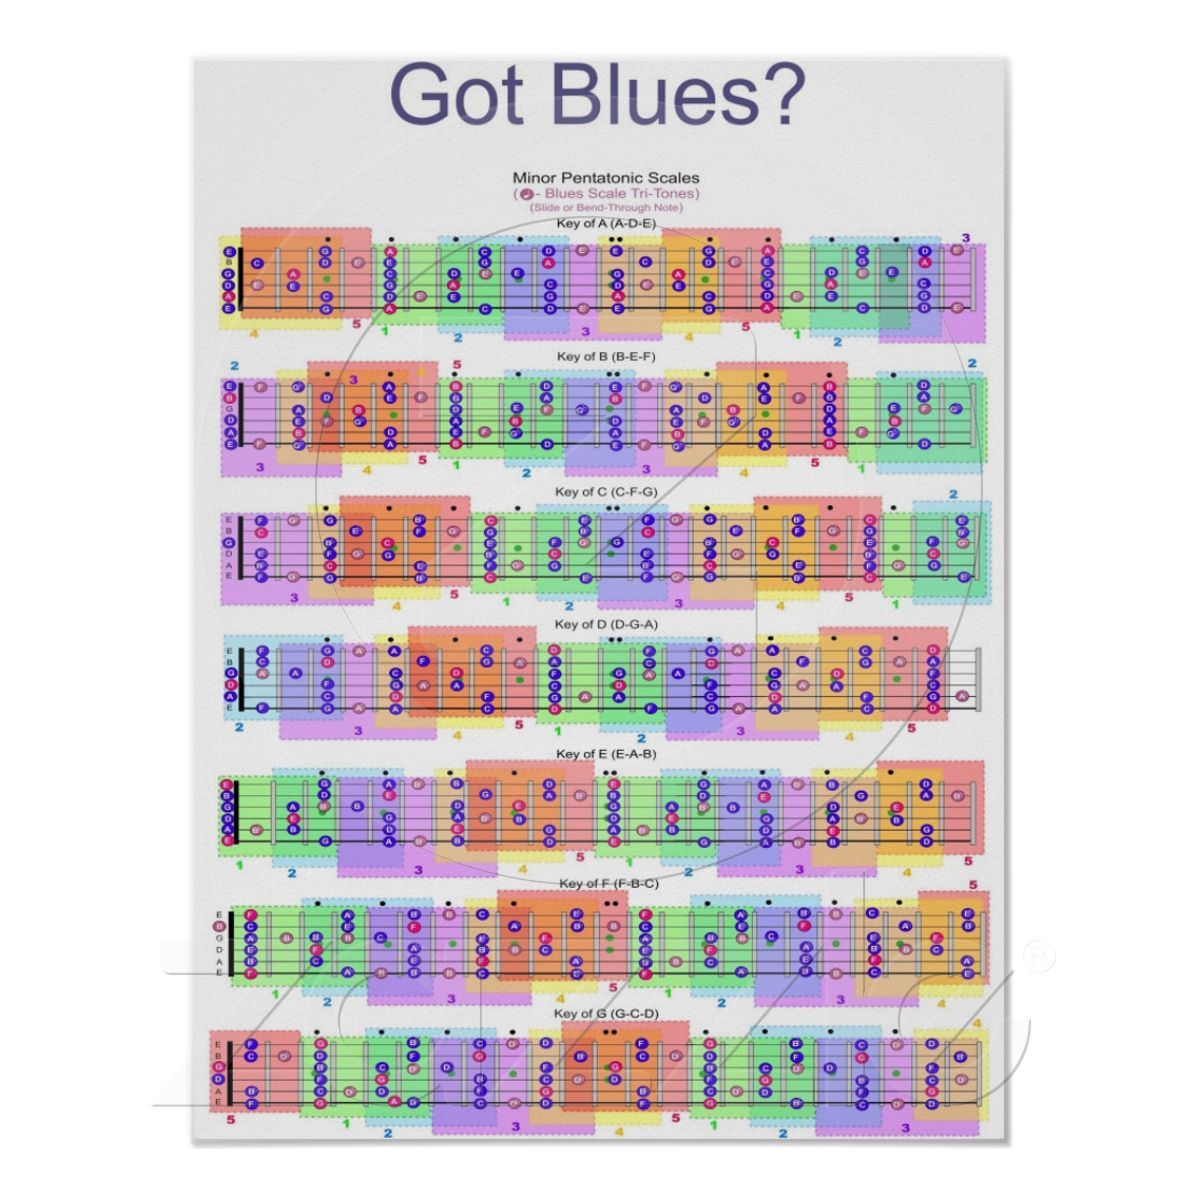 Got Blues Guitar Scales Poster Stuff 5039s And Modern Wiring Style Diagram From Http Wwwmylespaulcom Zazzlecom